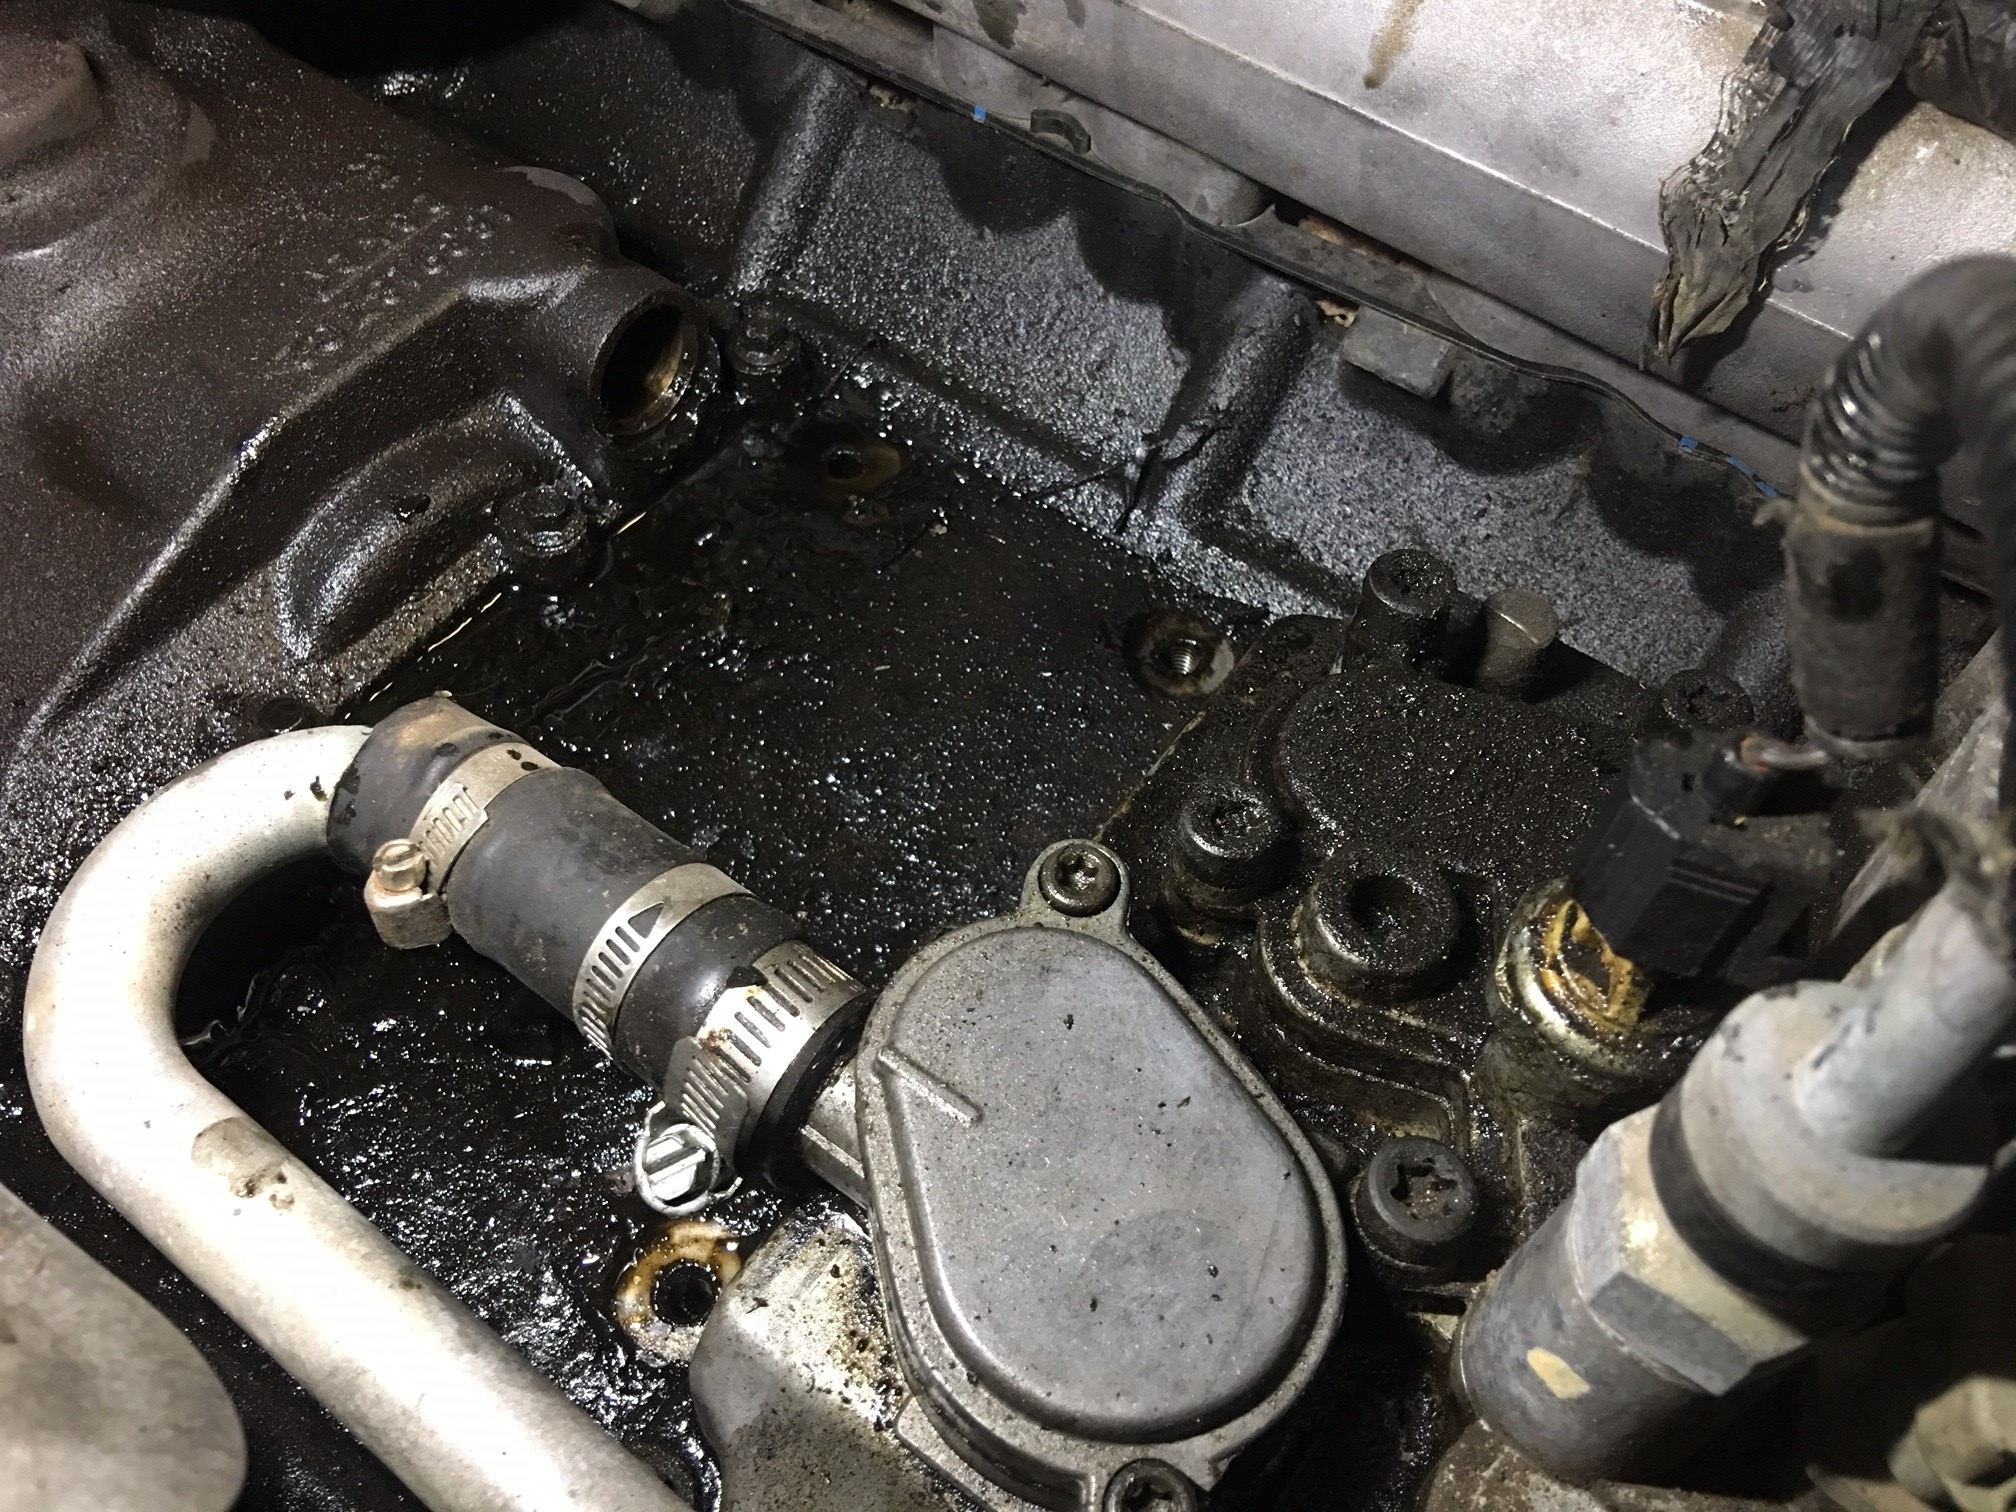 Maxresdefault in addition  together with D Oil Leak Under Turbo Drain Back Culprit Img as well Hqdefault moreover Picture Php Pictureid Ec Bf Dced Cc A F Ba Baf Cc Cd. on icp sensor